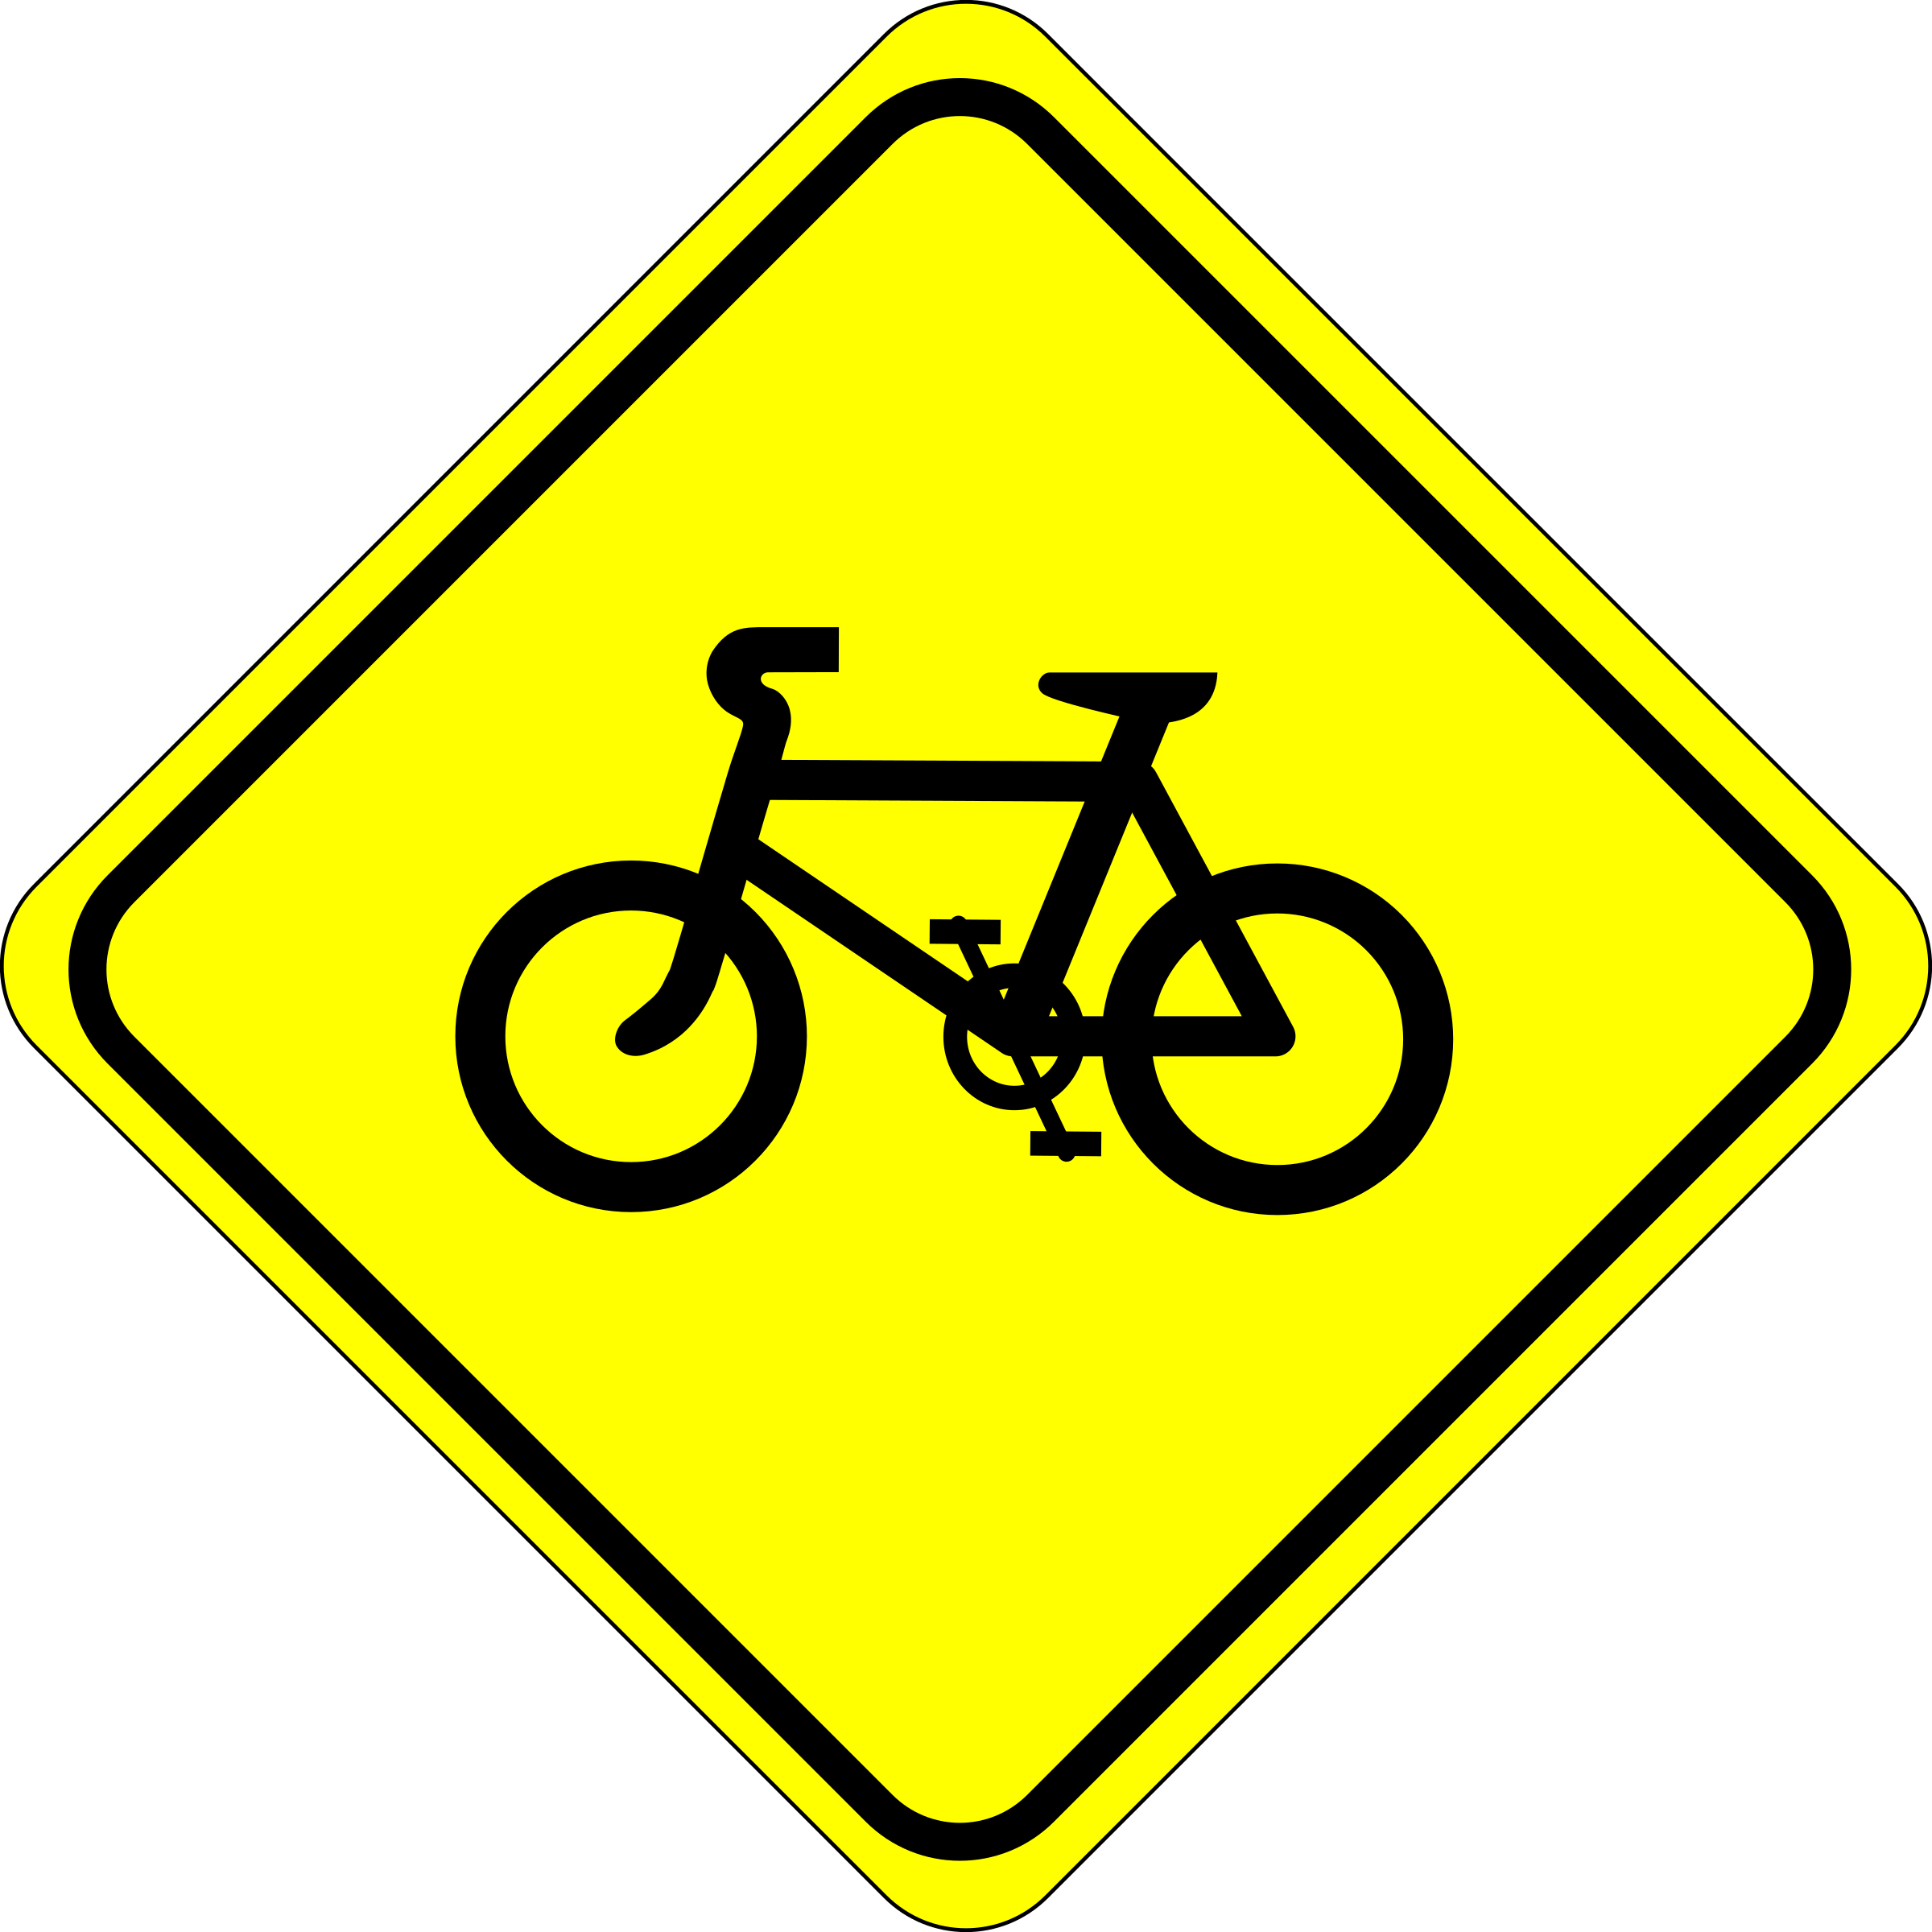 Roadsign watch for bicycles by Simarilius